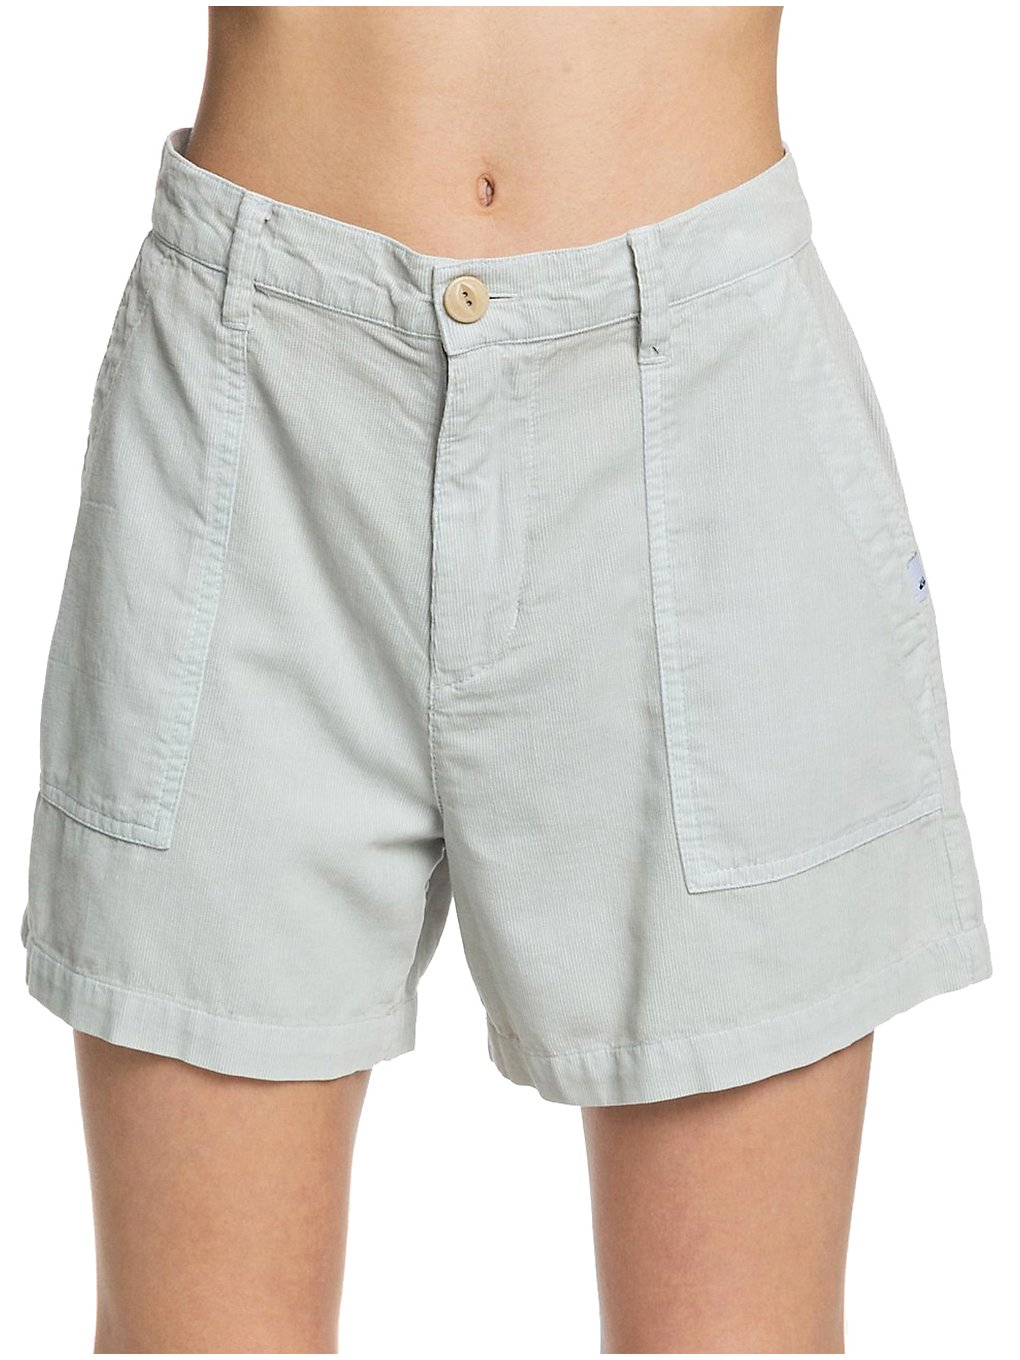 Quiksilver Bb Cord Shorts mirage gray